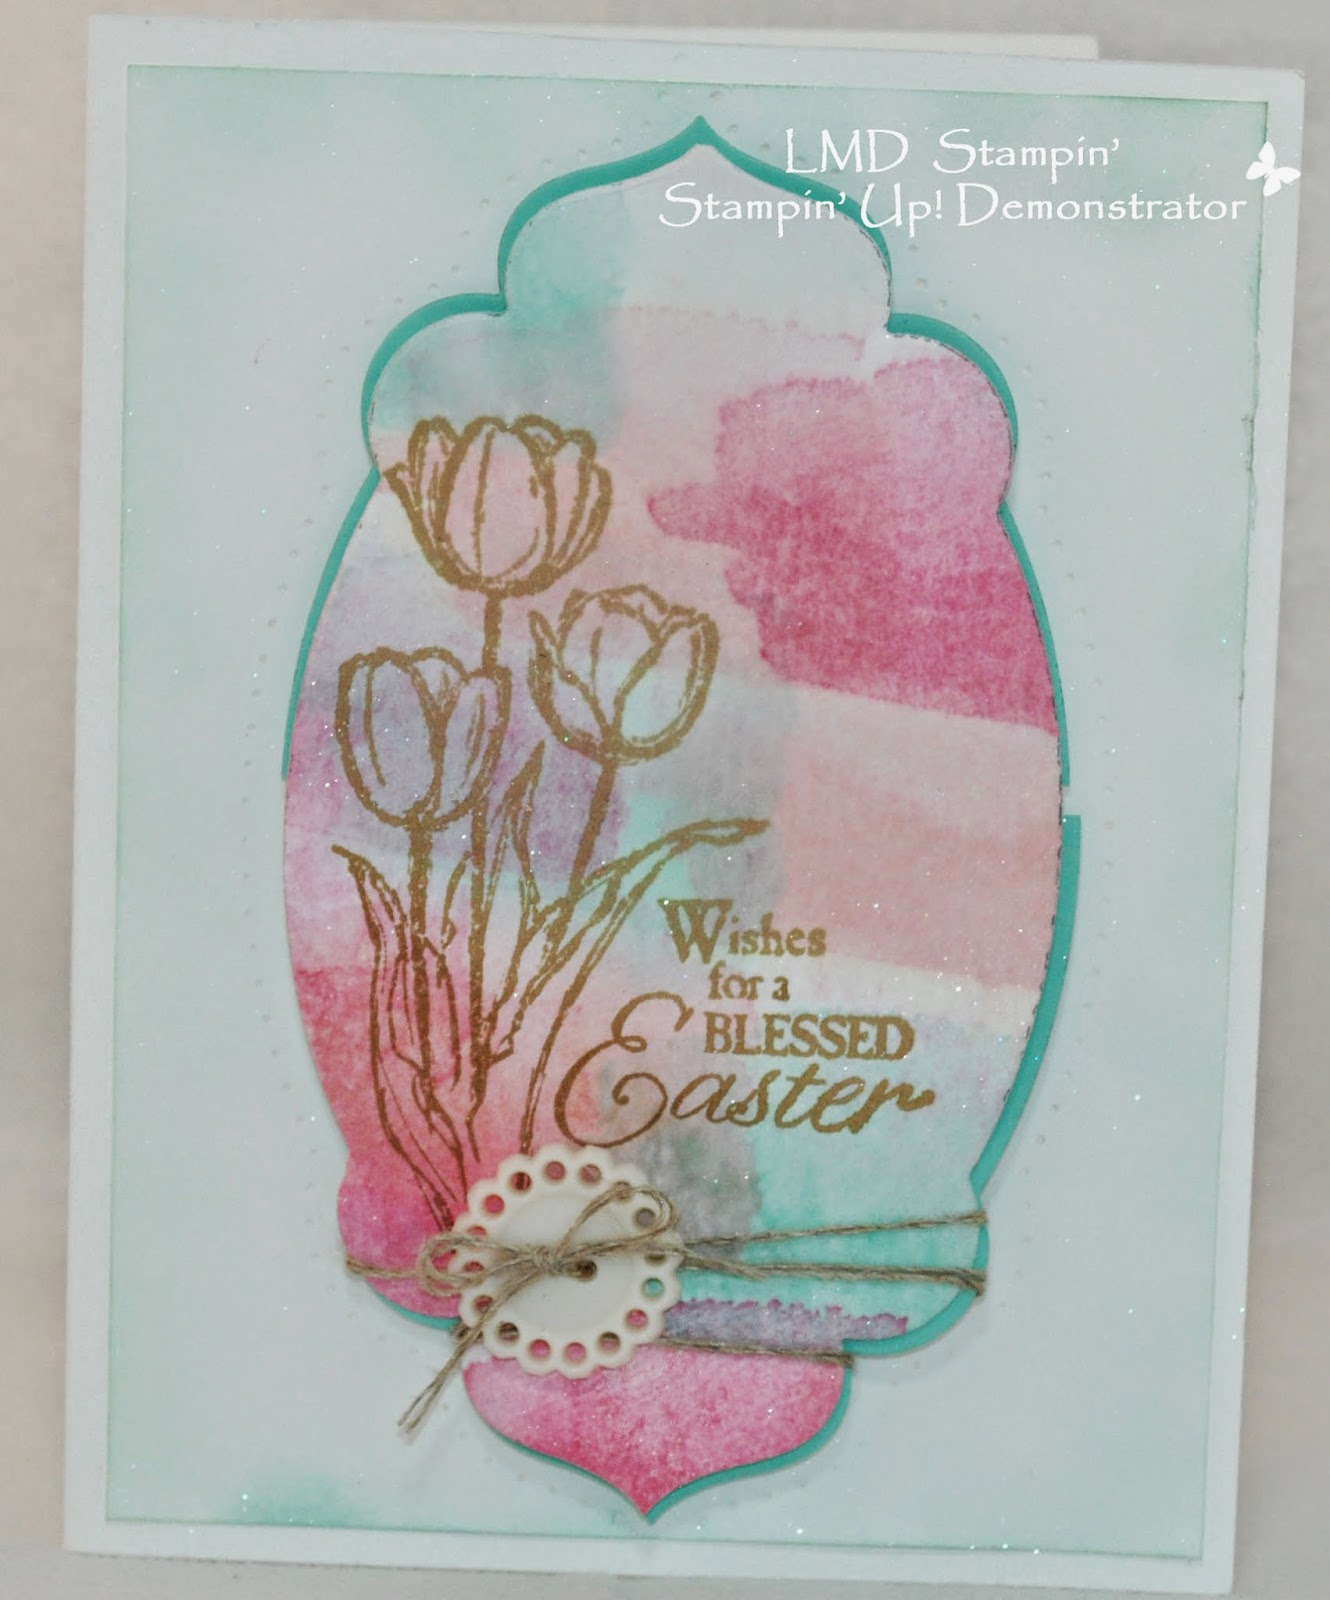 http://www.stampinup.net/esuite/home/lmdstampin/project/viewProject.soa?id=419791